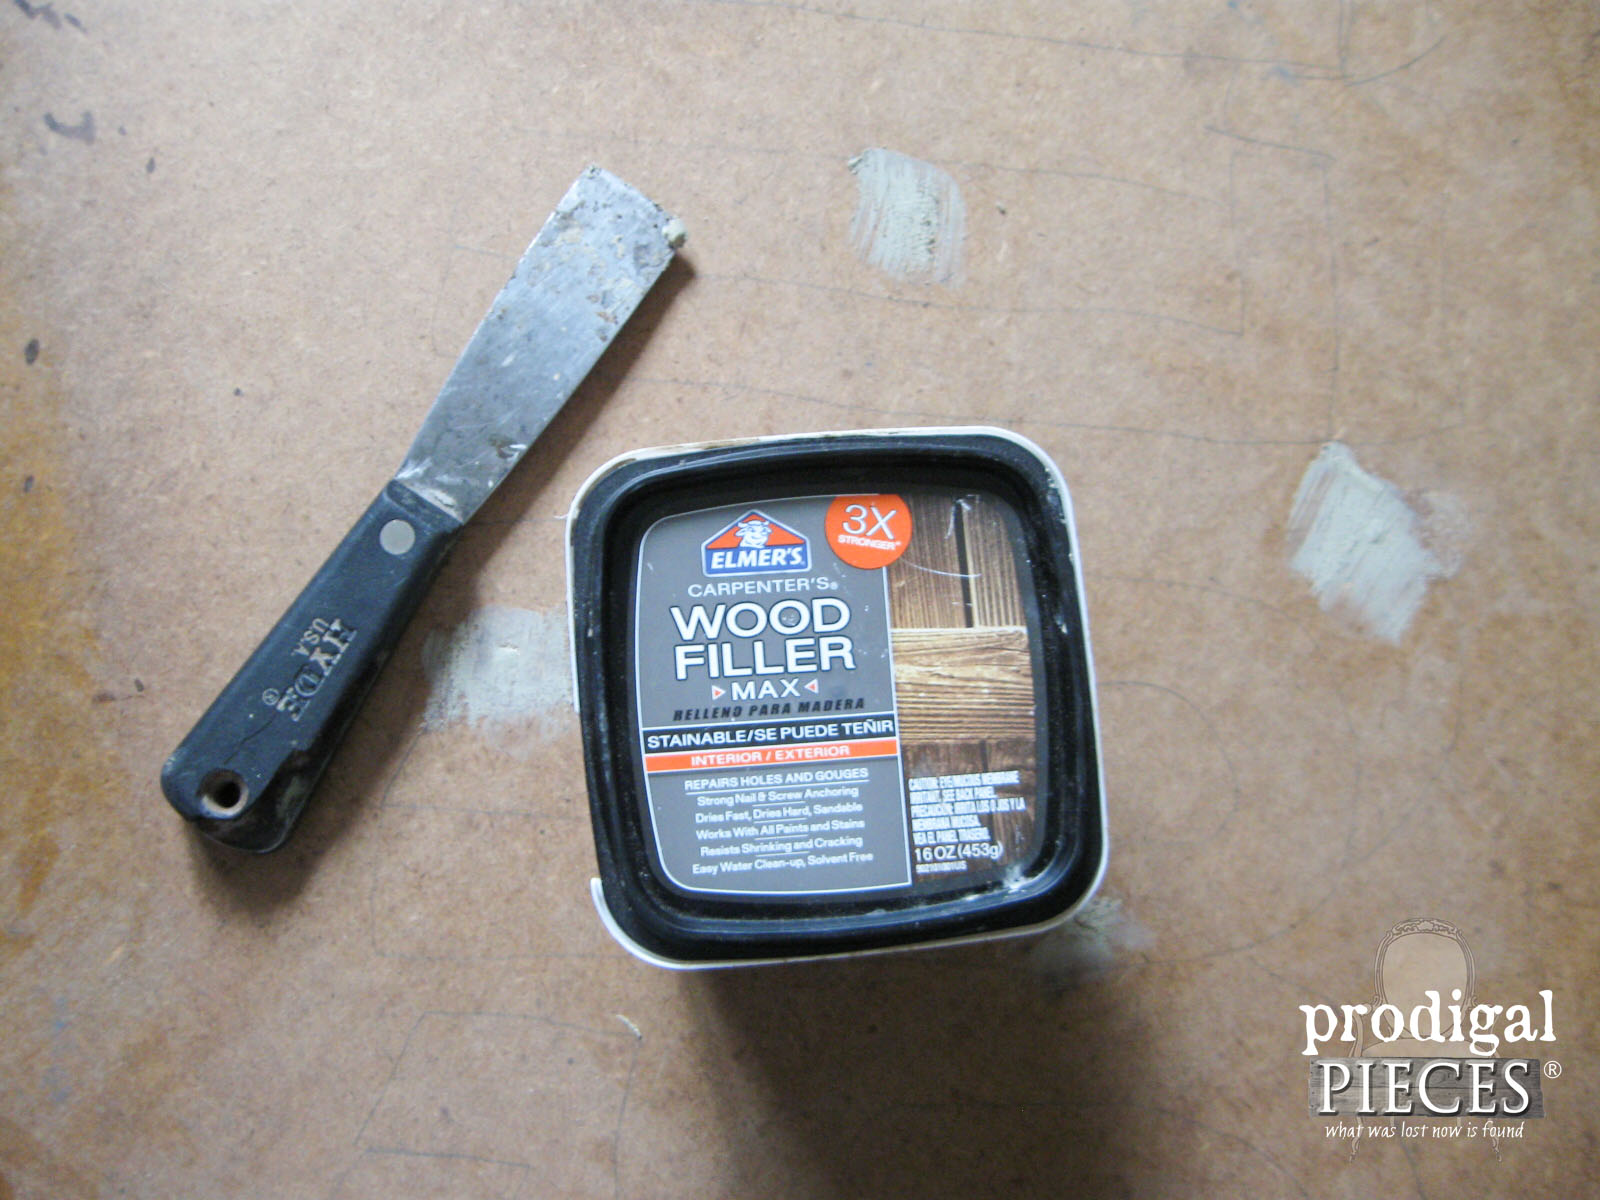 Using Wood Filler to Repair Faux Clock Face | Prodigal Pieces | www.prodigalpieces.com